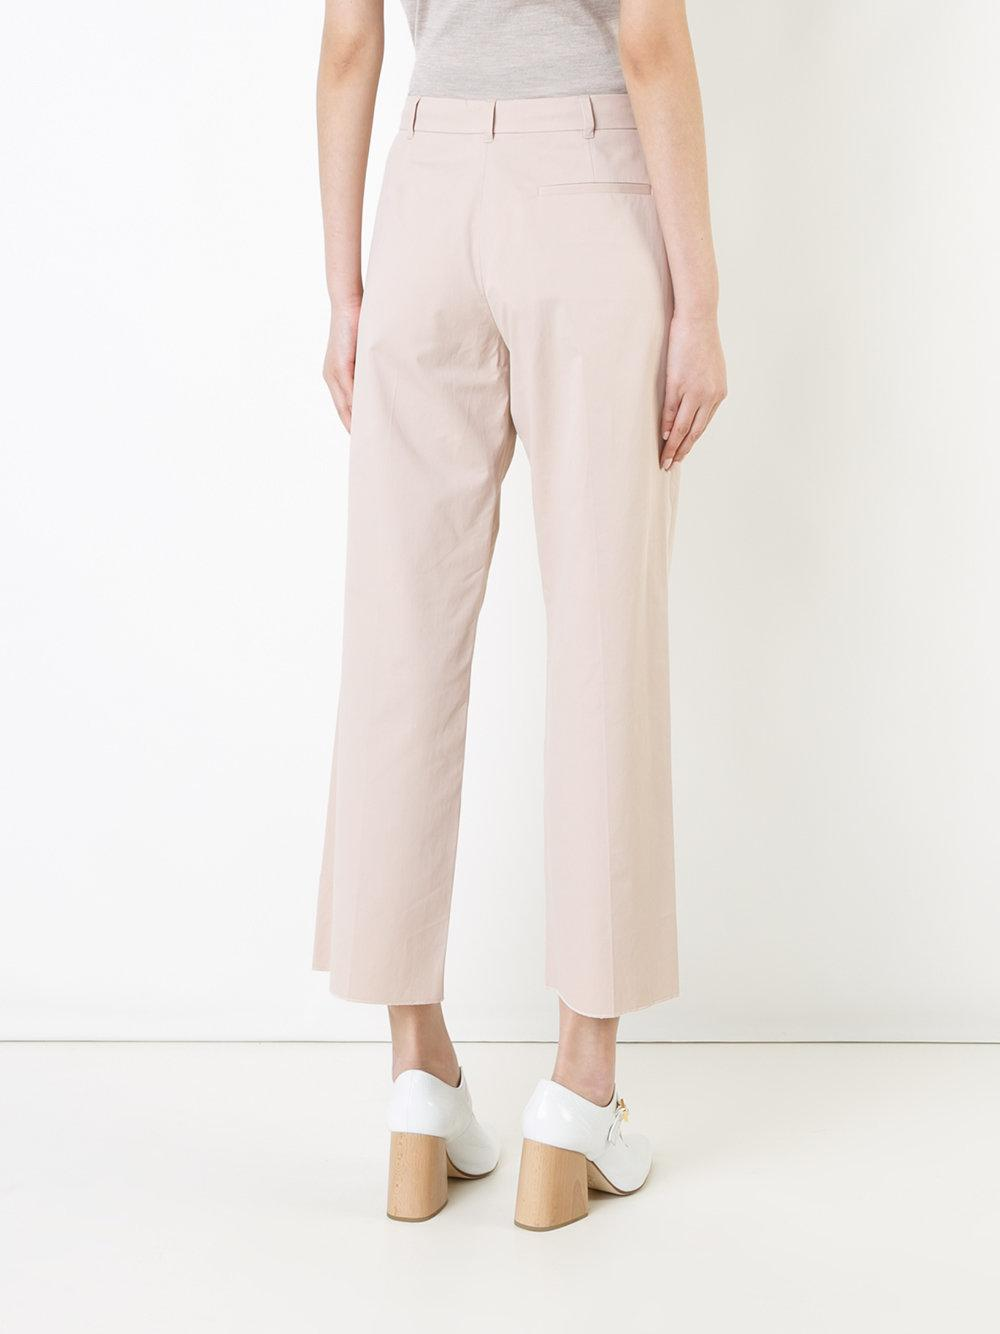 flared trousers - Nude & Neutrals Agnona Cheap Pre Order 2018 Newest For Sale Hurry Up Cheap Price From China Low Shipping Fee For Sale q7yiJMfT6Y